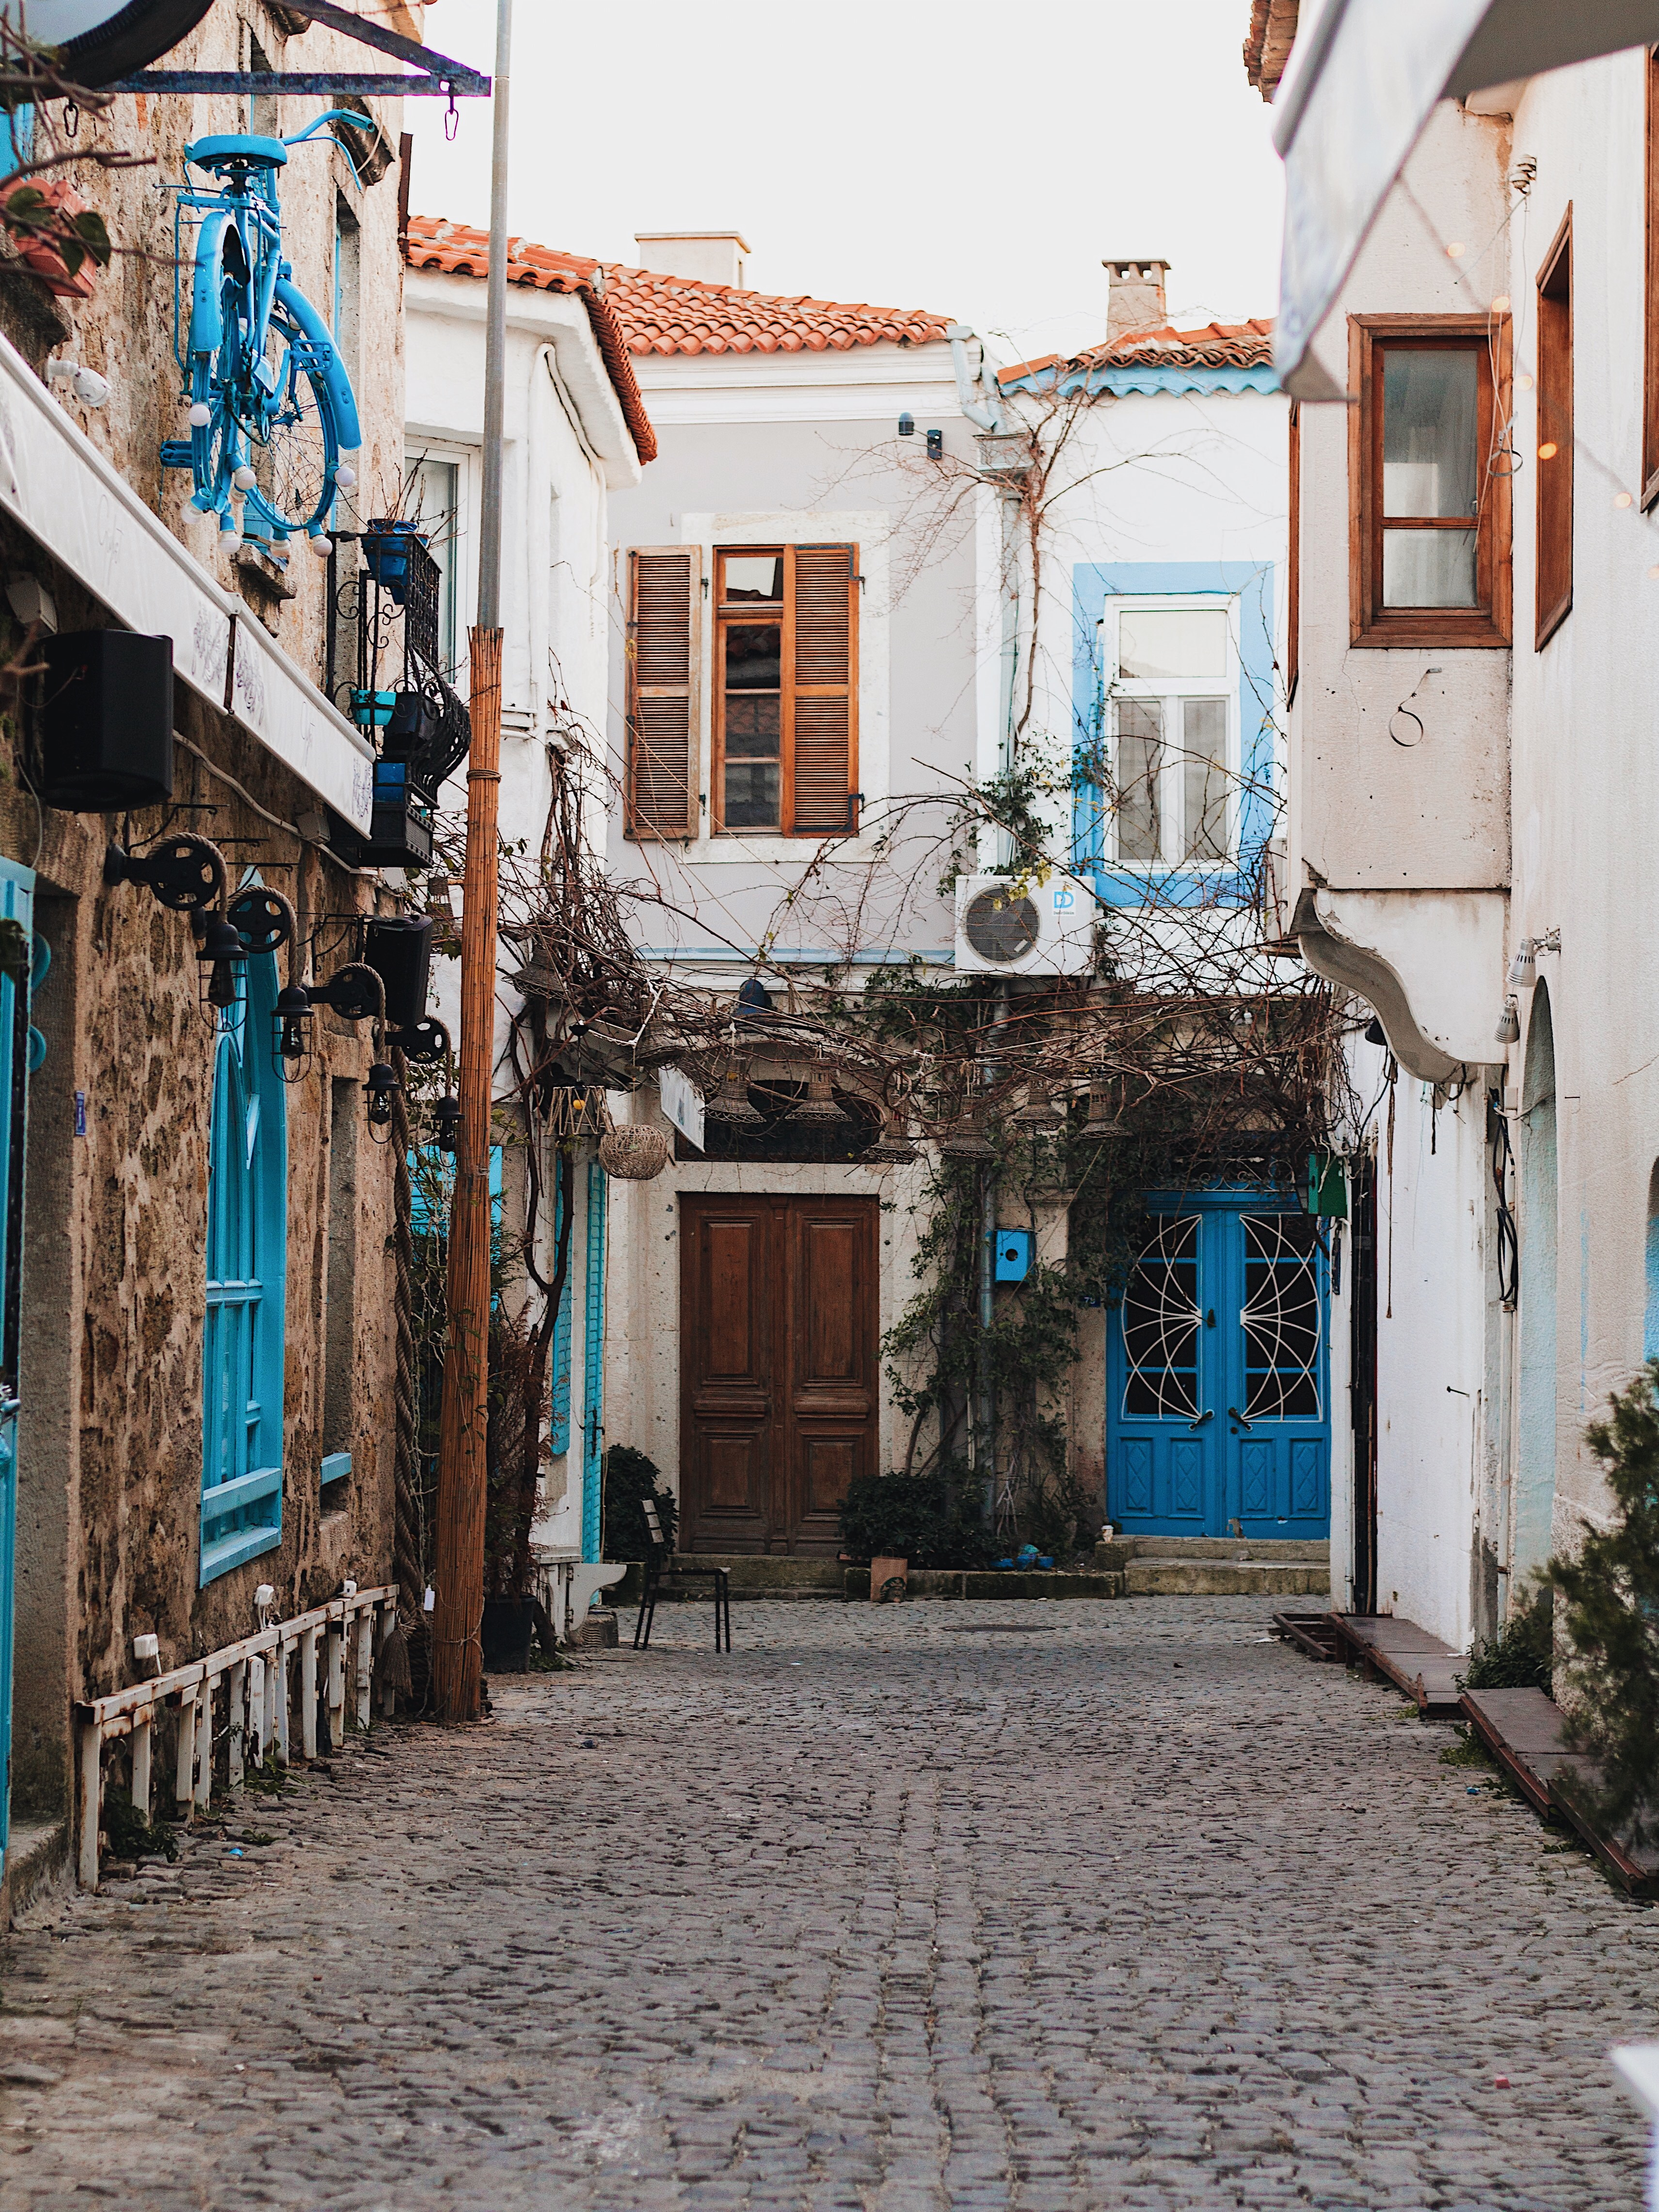 Illustrated by Sade - Blue and White House down a cobble stone street in Alacati, Izmir, Turkey